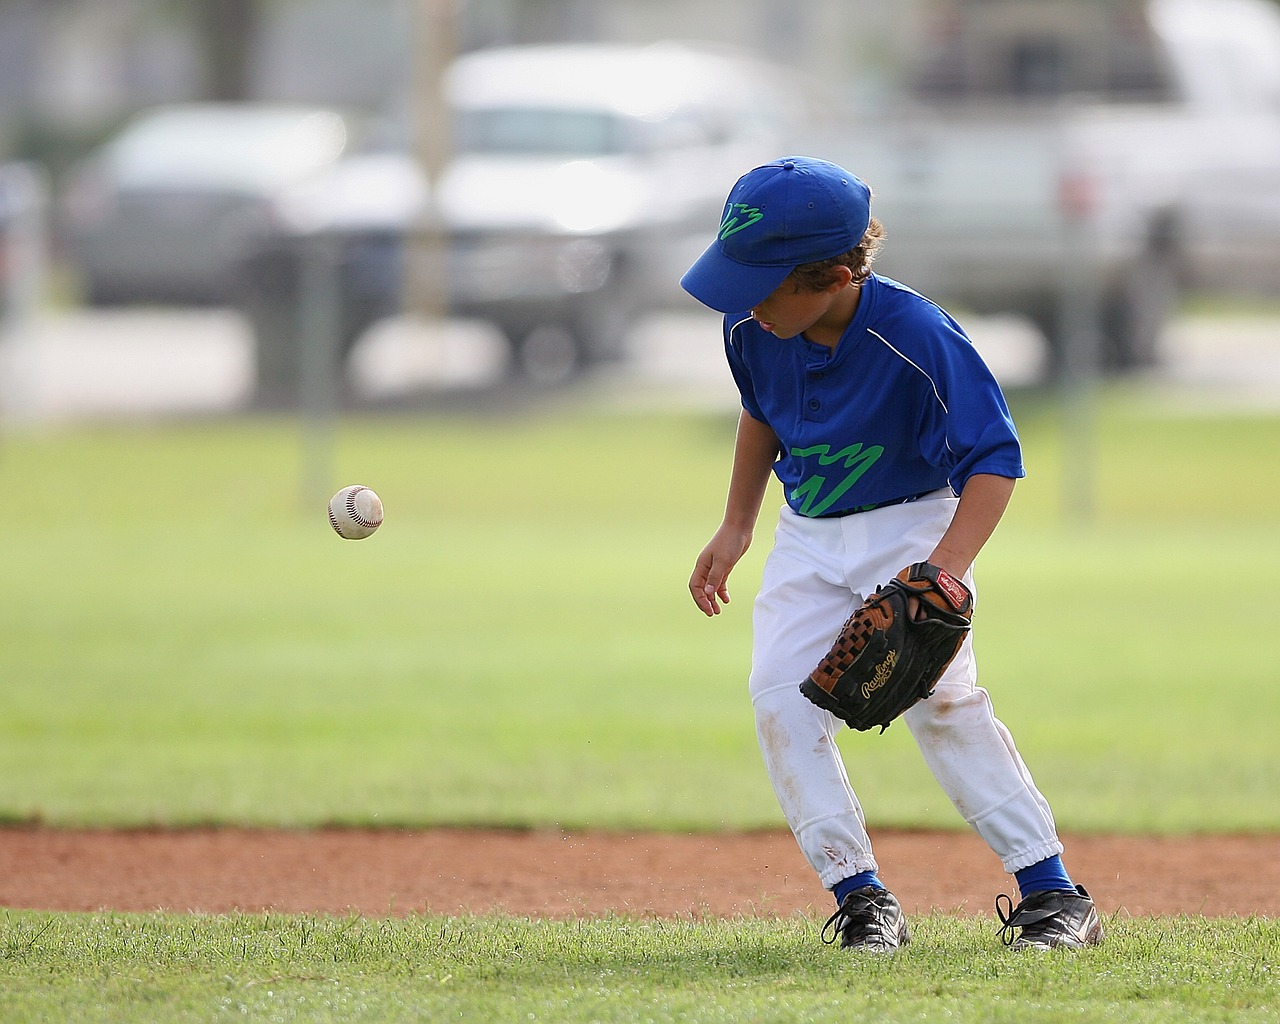 Best Baseball Gloves For Youth